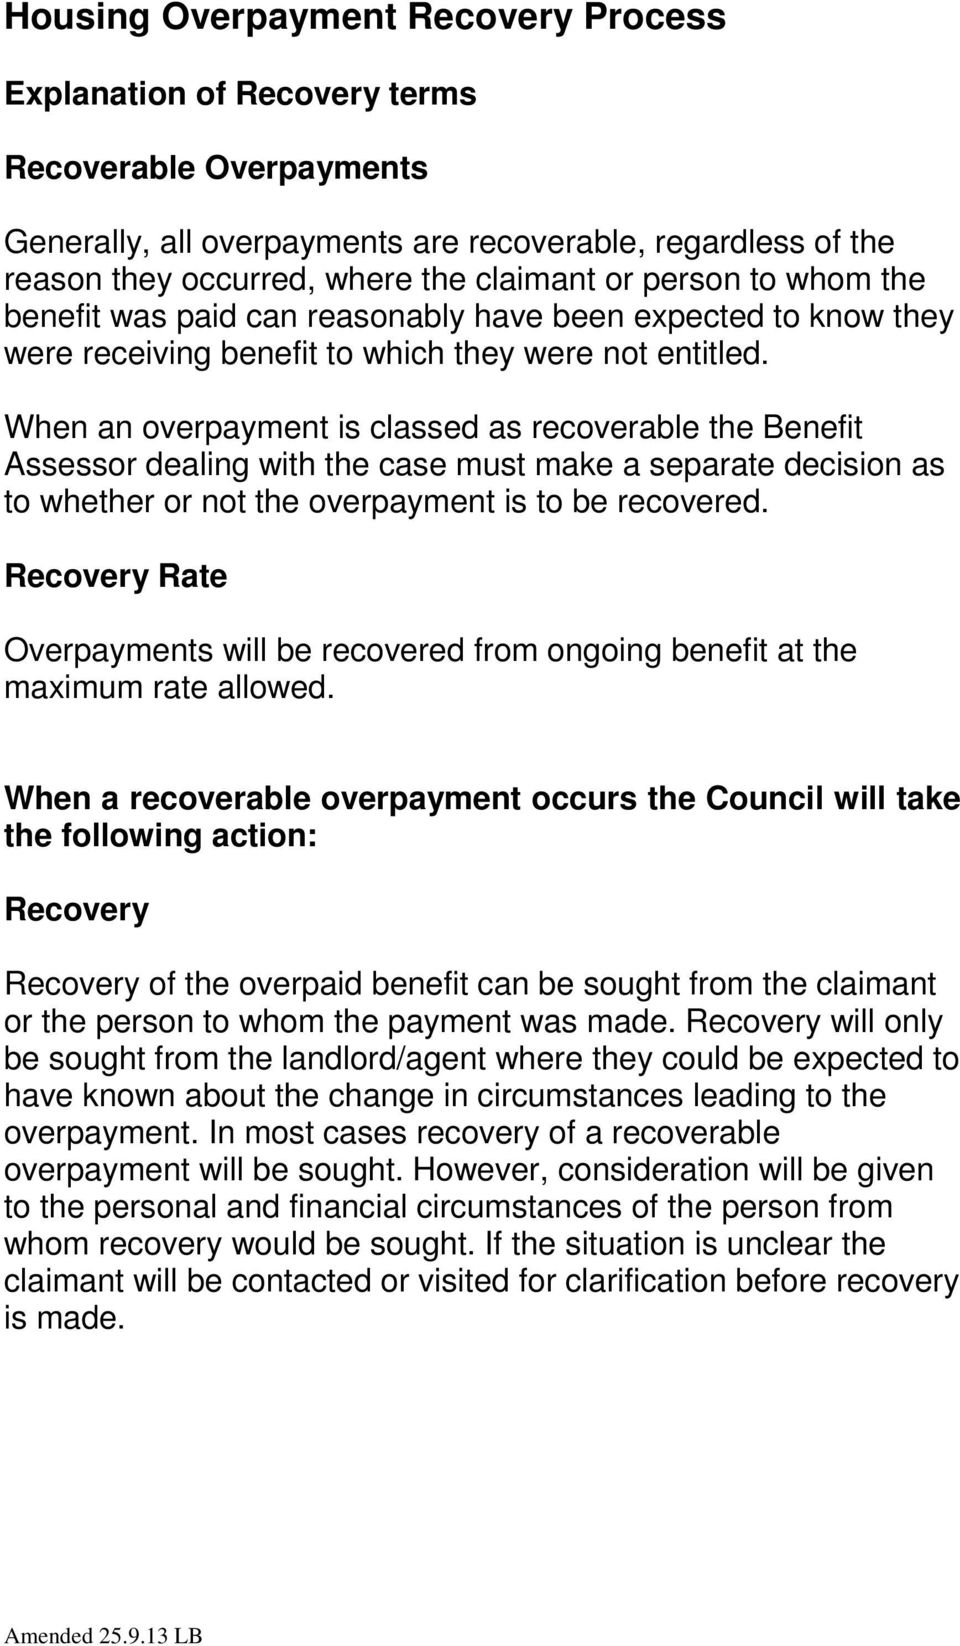 When an overpayment is classed as recoverable the Benefit Assessor dealing with the case must make a separate decision as to whether or not the overpayment is to be recovered.